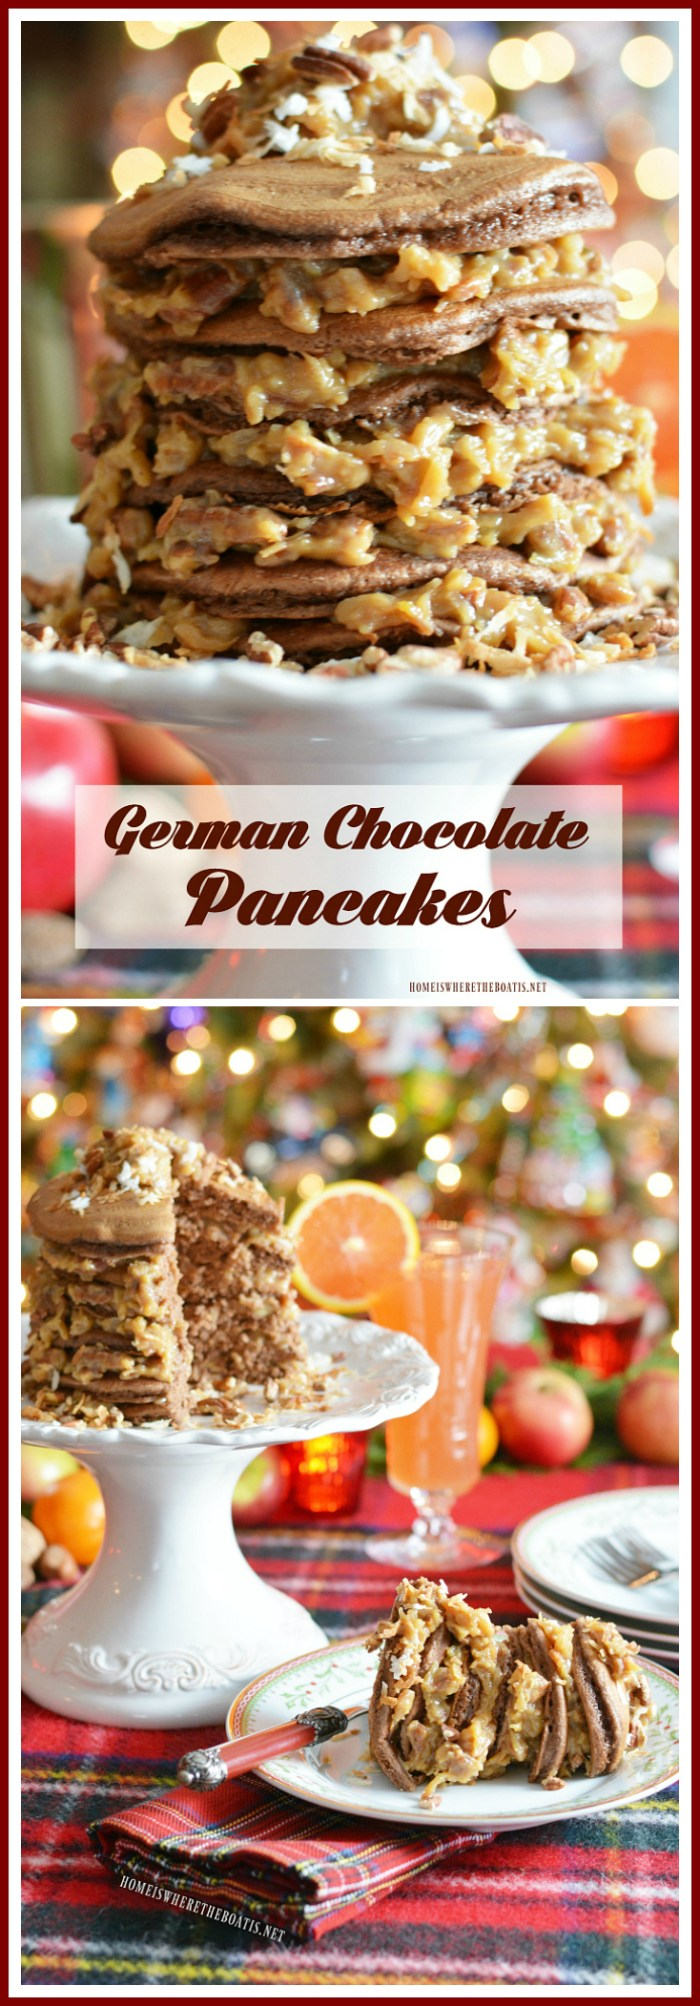 Decadent German Chocolate Pancakes from cake mix! | homeiswheretheboatis.net #Christmas #novelbakers #brunch #recipe